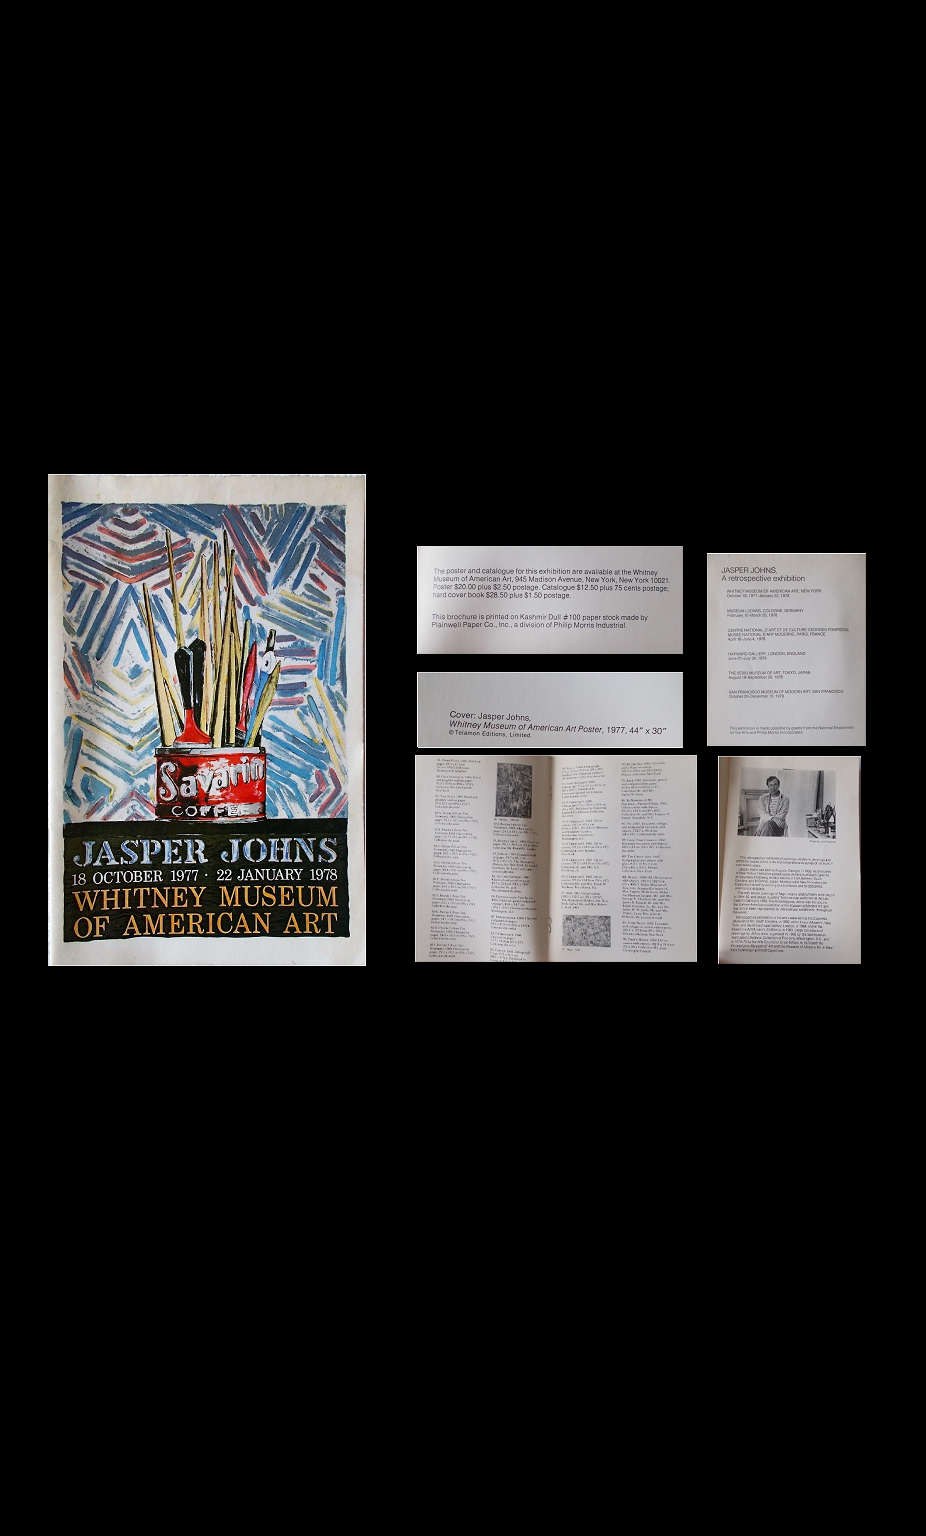 """JASPER JOHNS, Whitney Museum of American Art"" , 1977, Exhibition Catalogue."